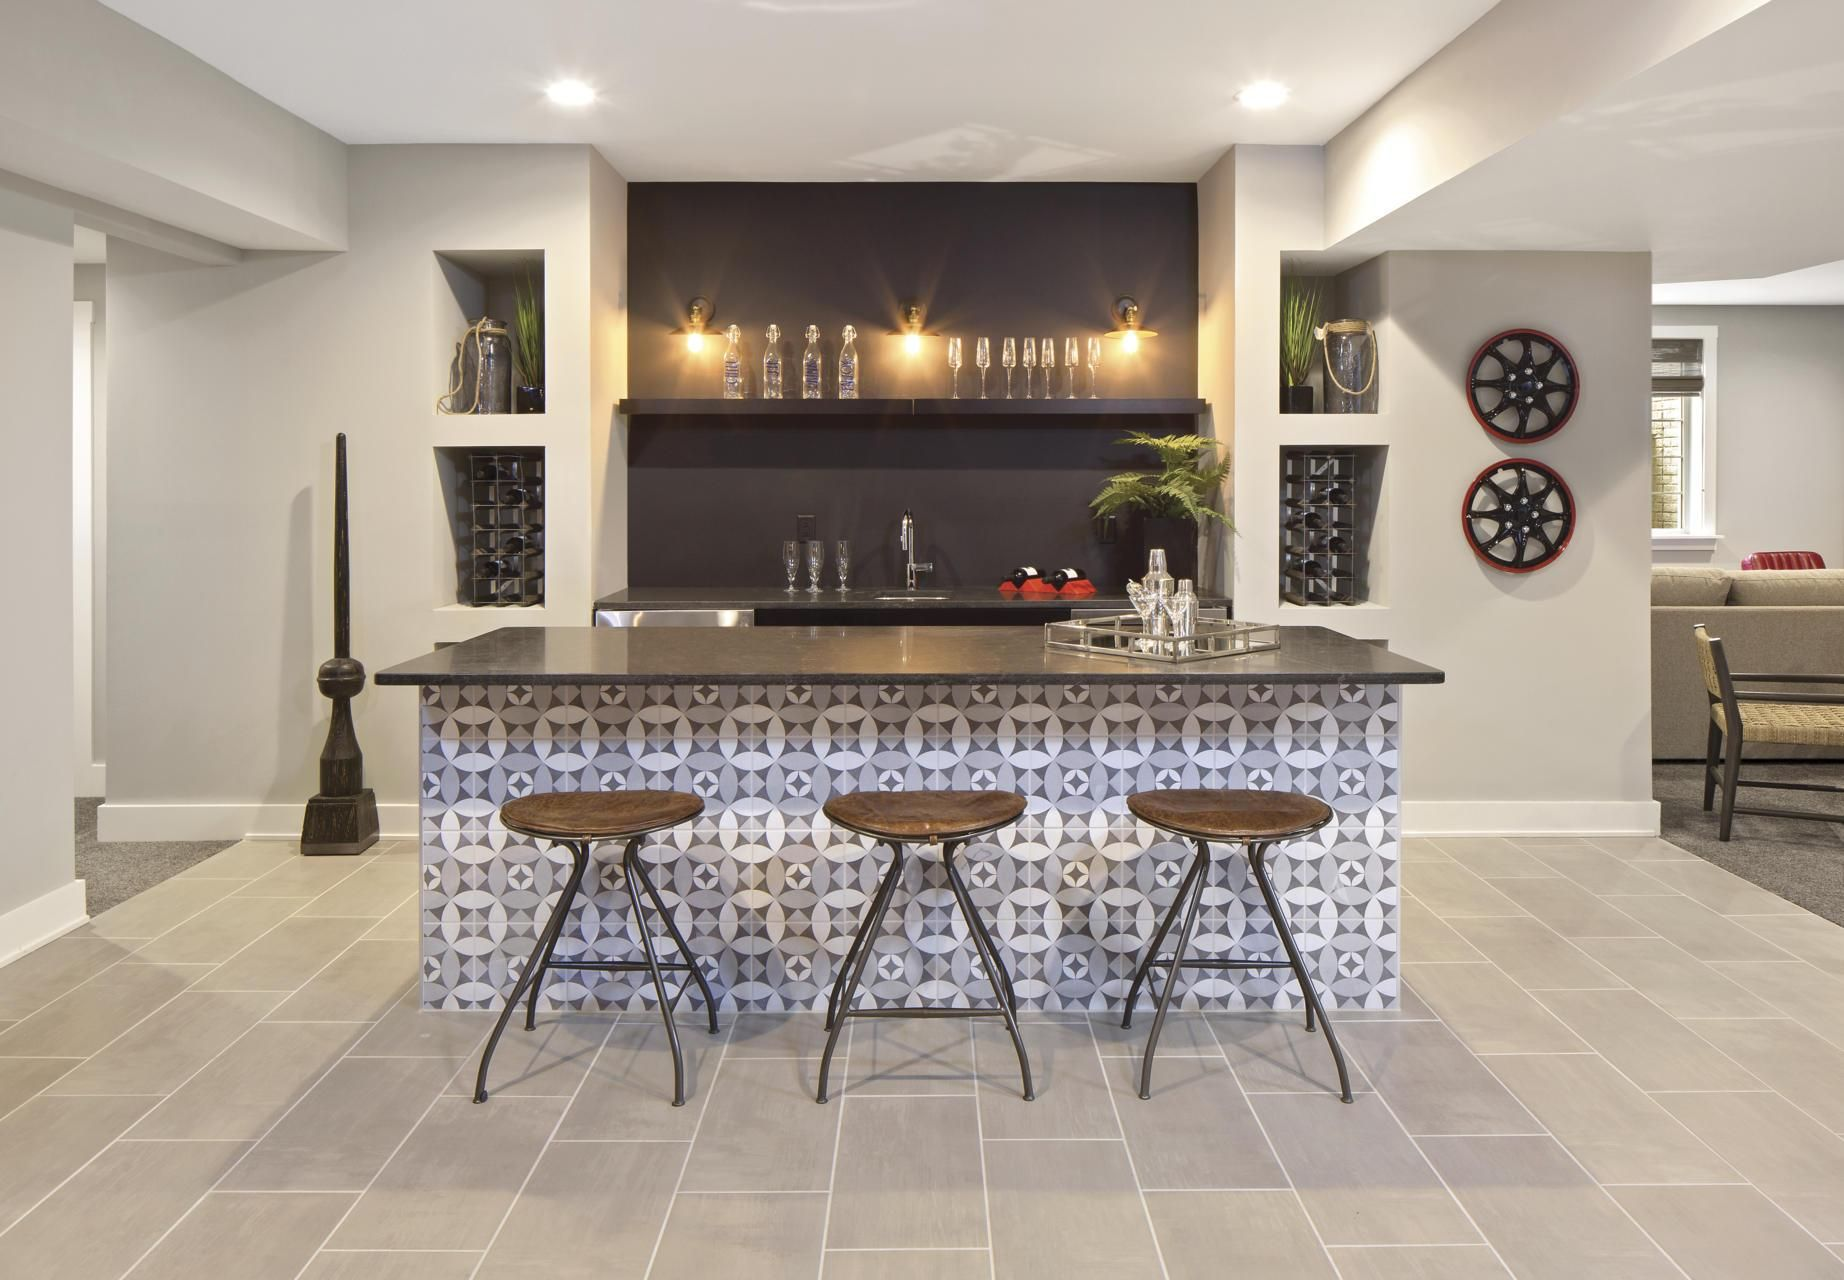 Wet Bar With Cabinets And Island Seating In Finished Basement